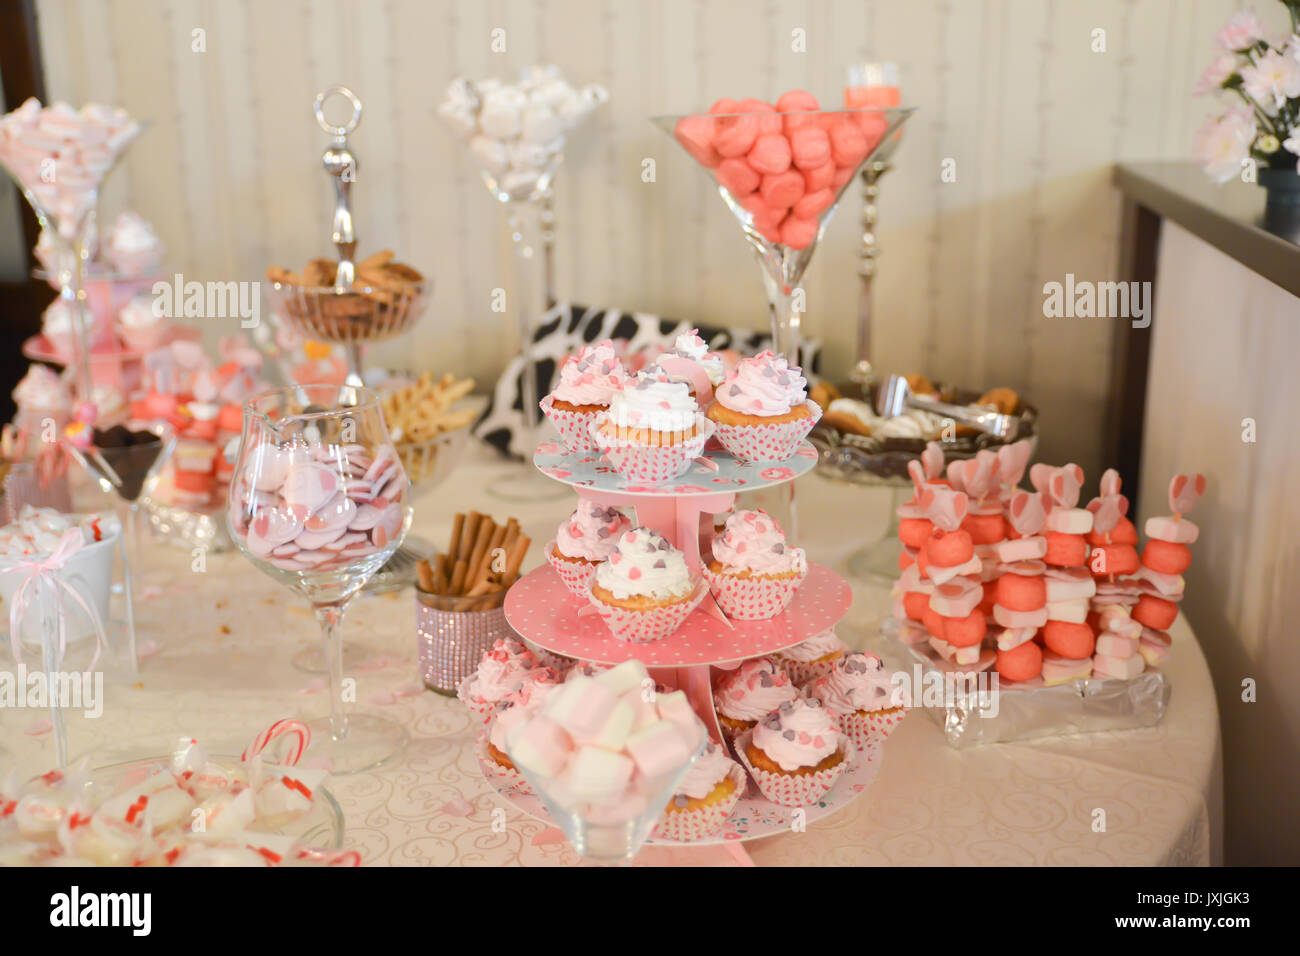 Candy Barsweets Arrangements For Wedding Reception Stock Photo